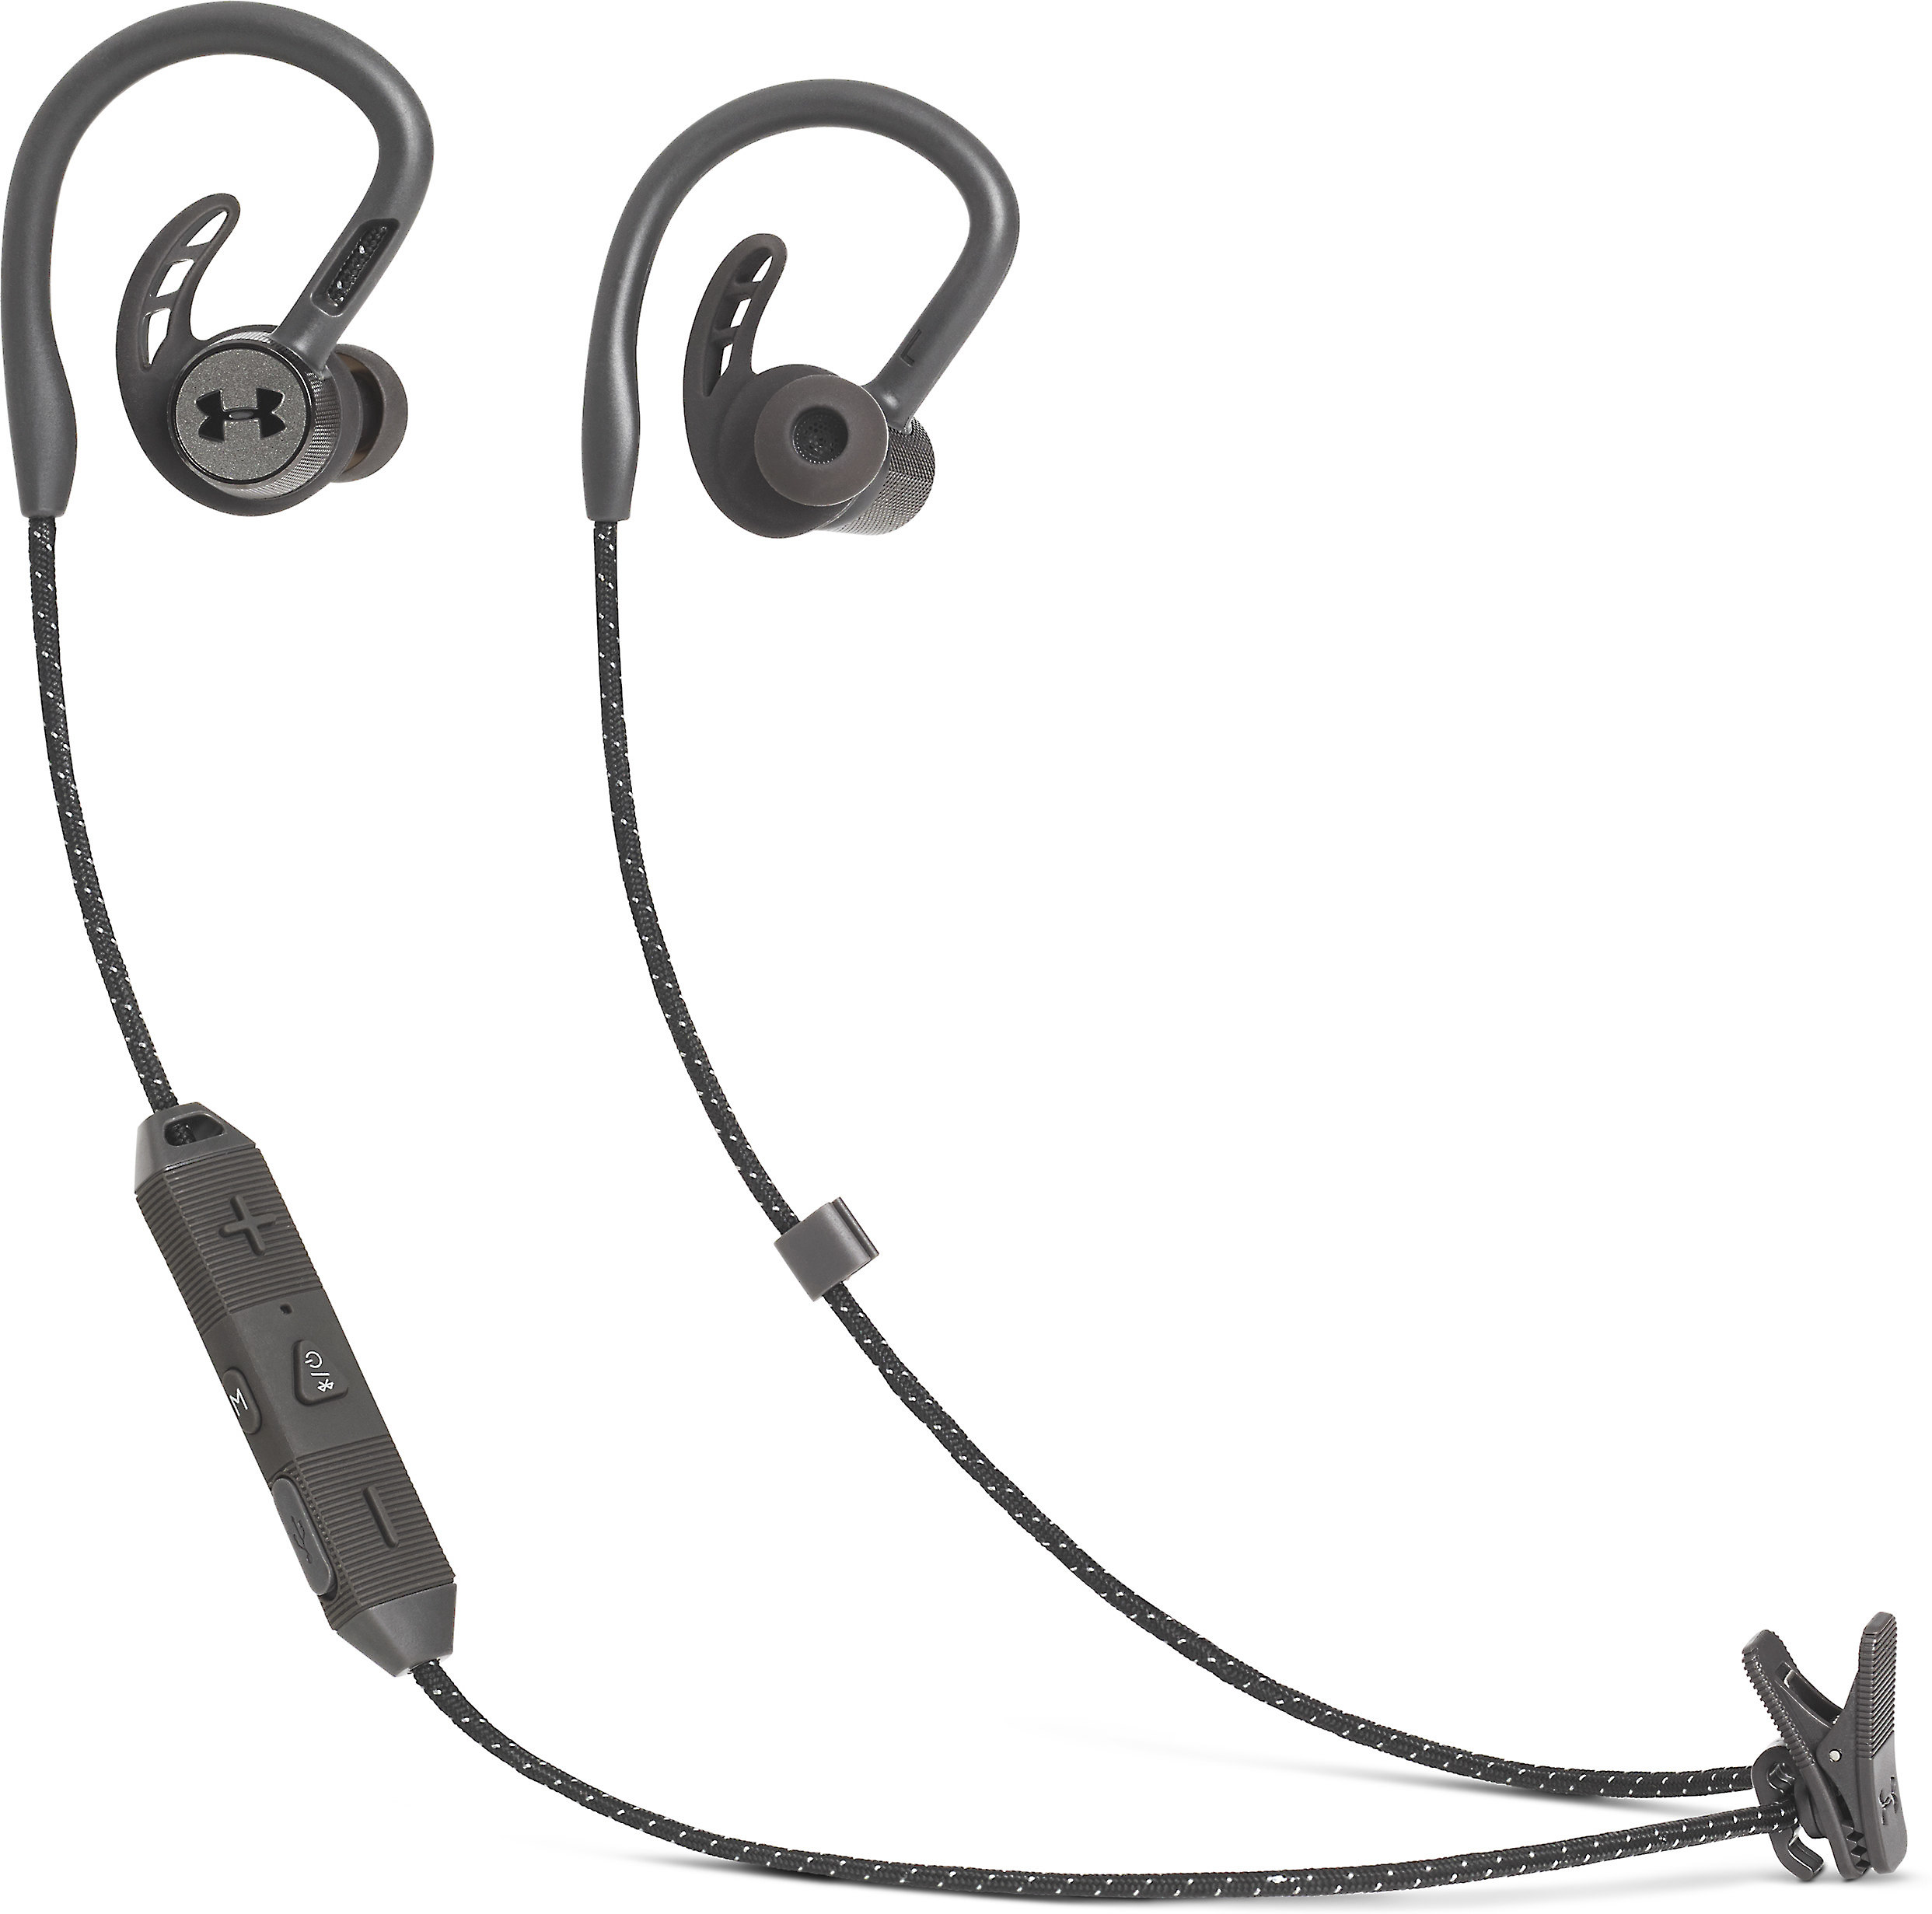 Under Armour Sport Wireless Pivot Engineered By Jbl In Ear Bluetooth Headphones At Crutchfield